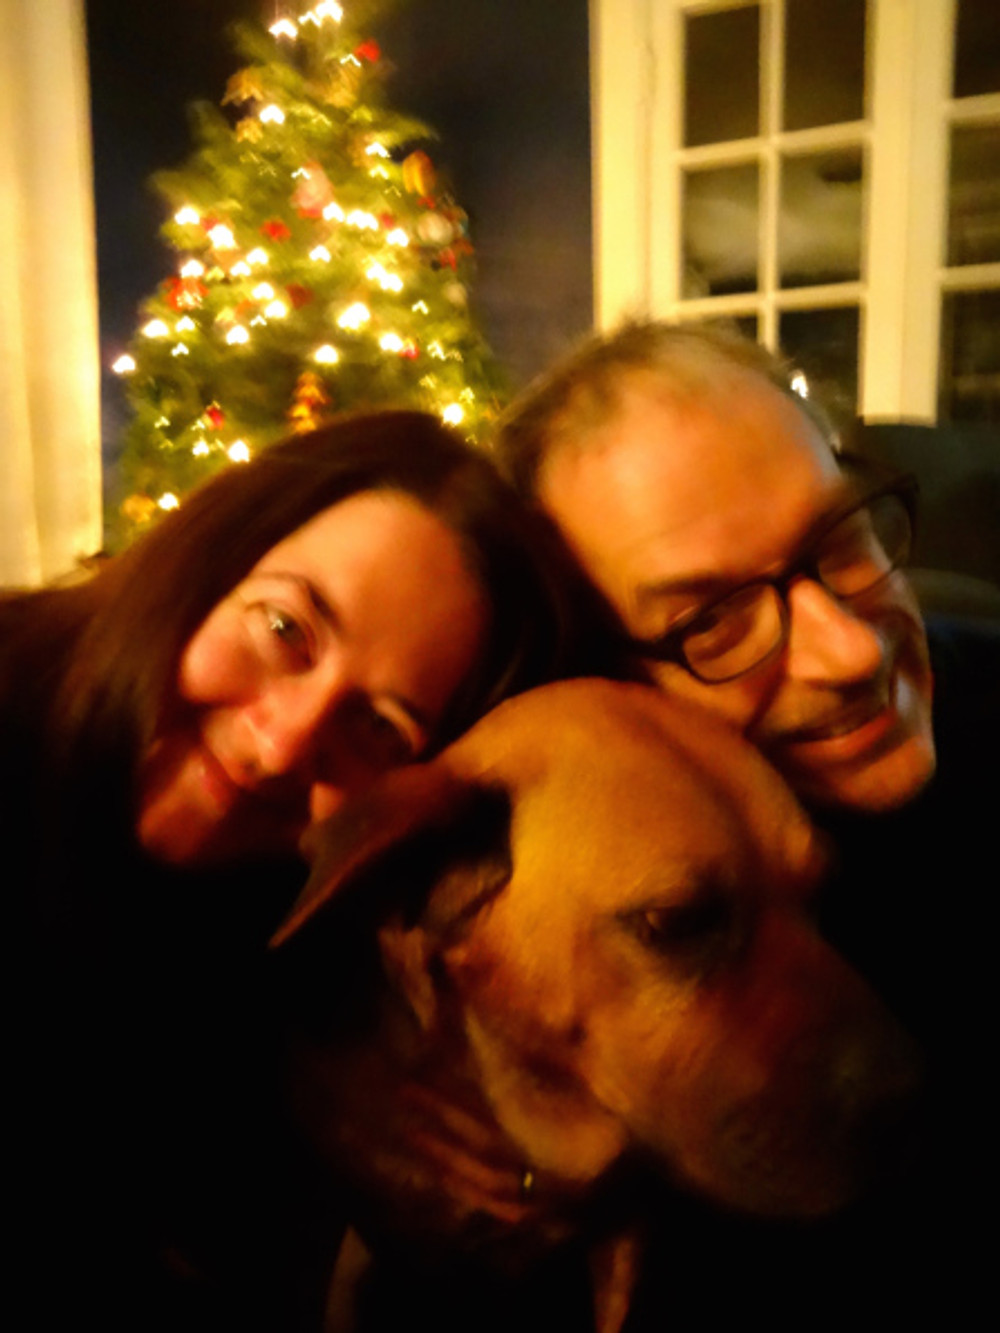 After dinner we made an attempt at a family selfie. Ruby of course didn't go for the multiple tries :)